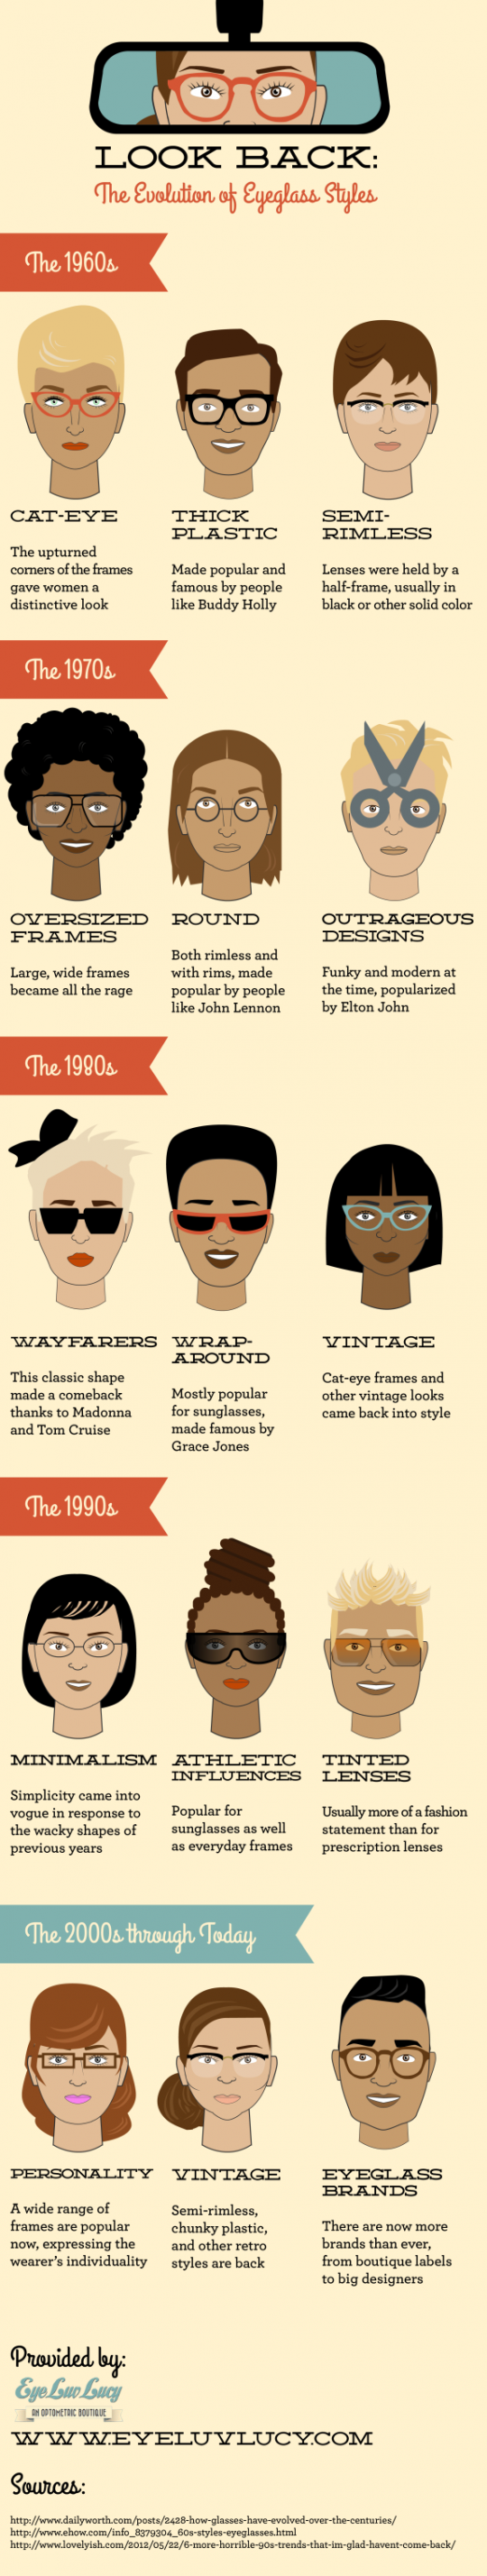 Look Back: The Evolution of Eyeglass Styles